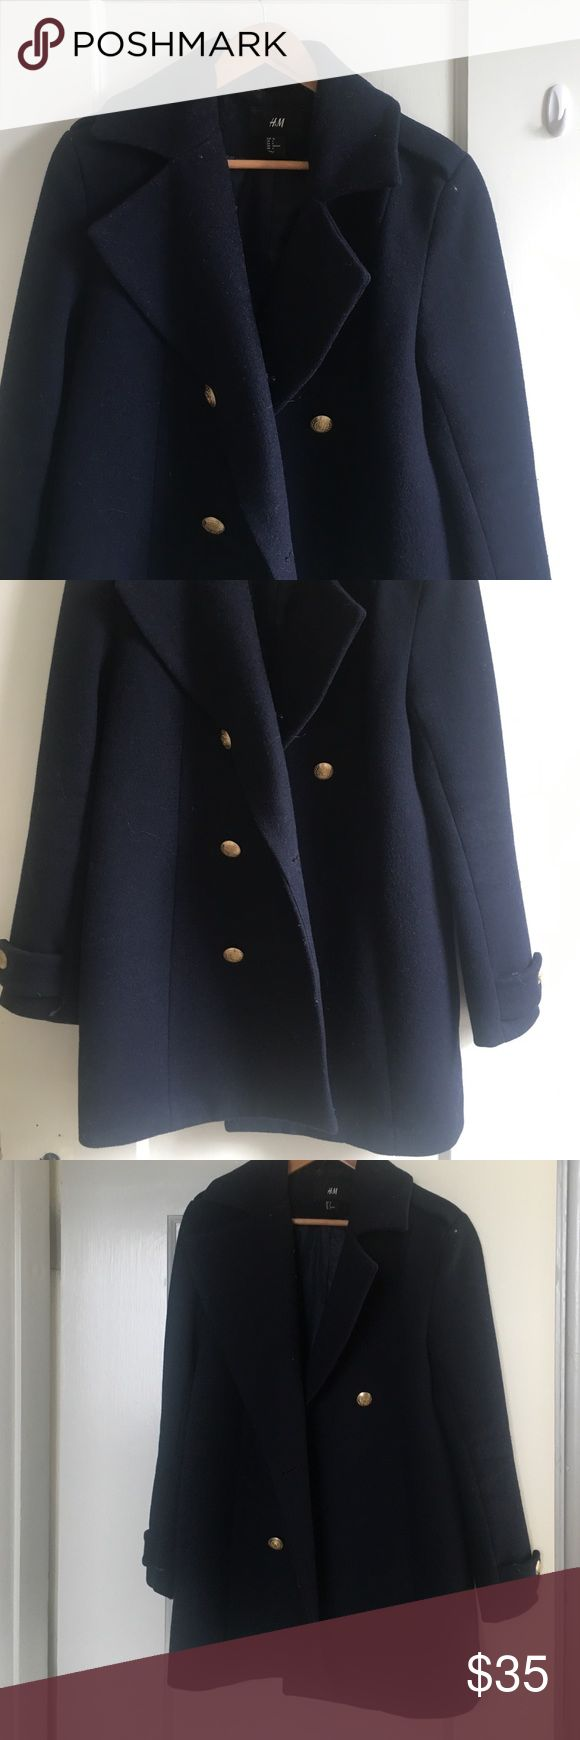 H&M coat Dark blue H&M coat made with 59% wool. One button is missing H&M Jackets & Coats